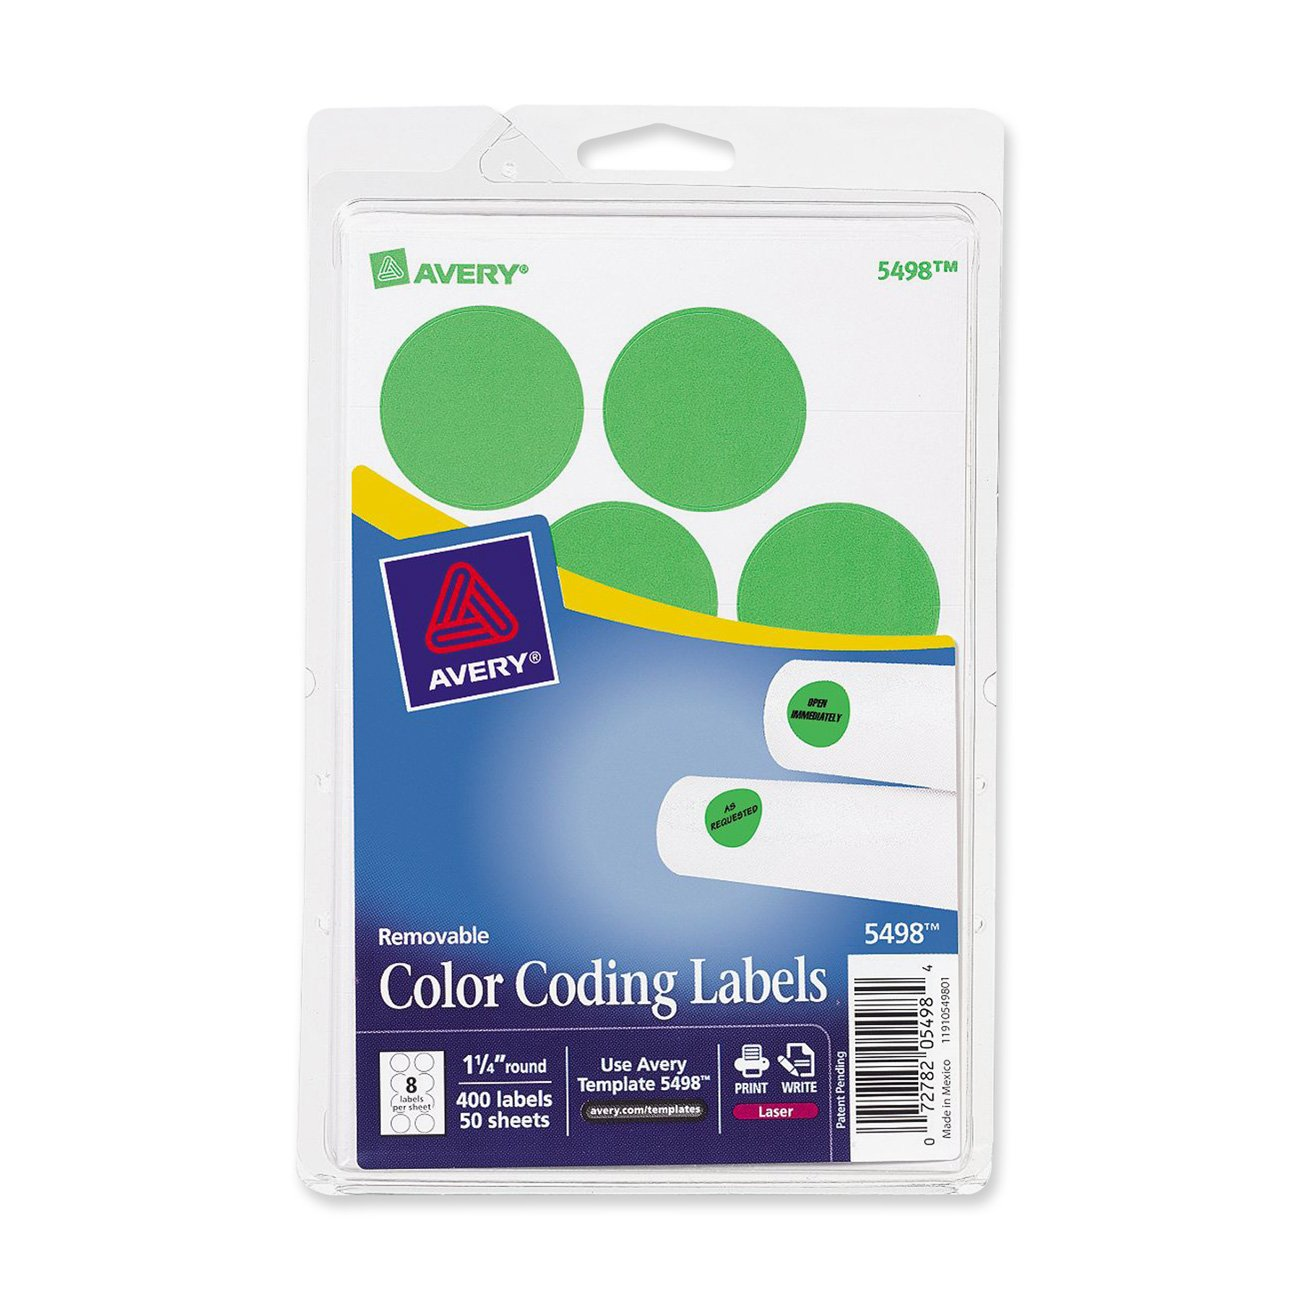 amazoncom avery 5498 removable print or write color coding labels for laser printers 1 14 round neon green pack of 400 office products - Avery Colored Labels